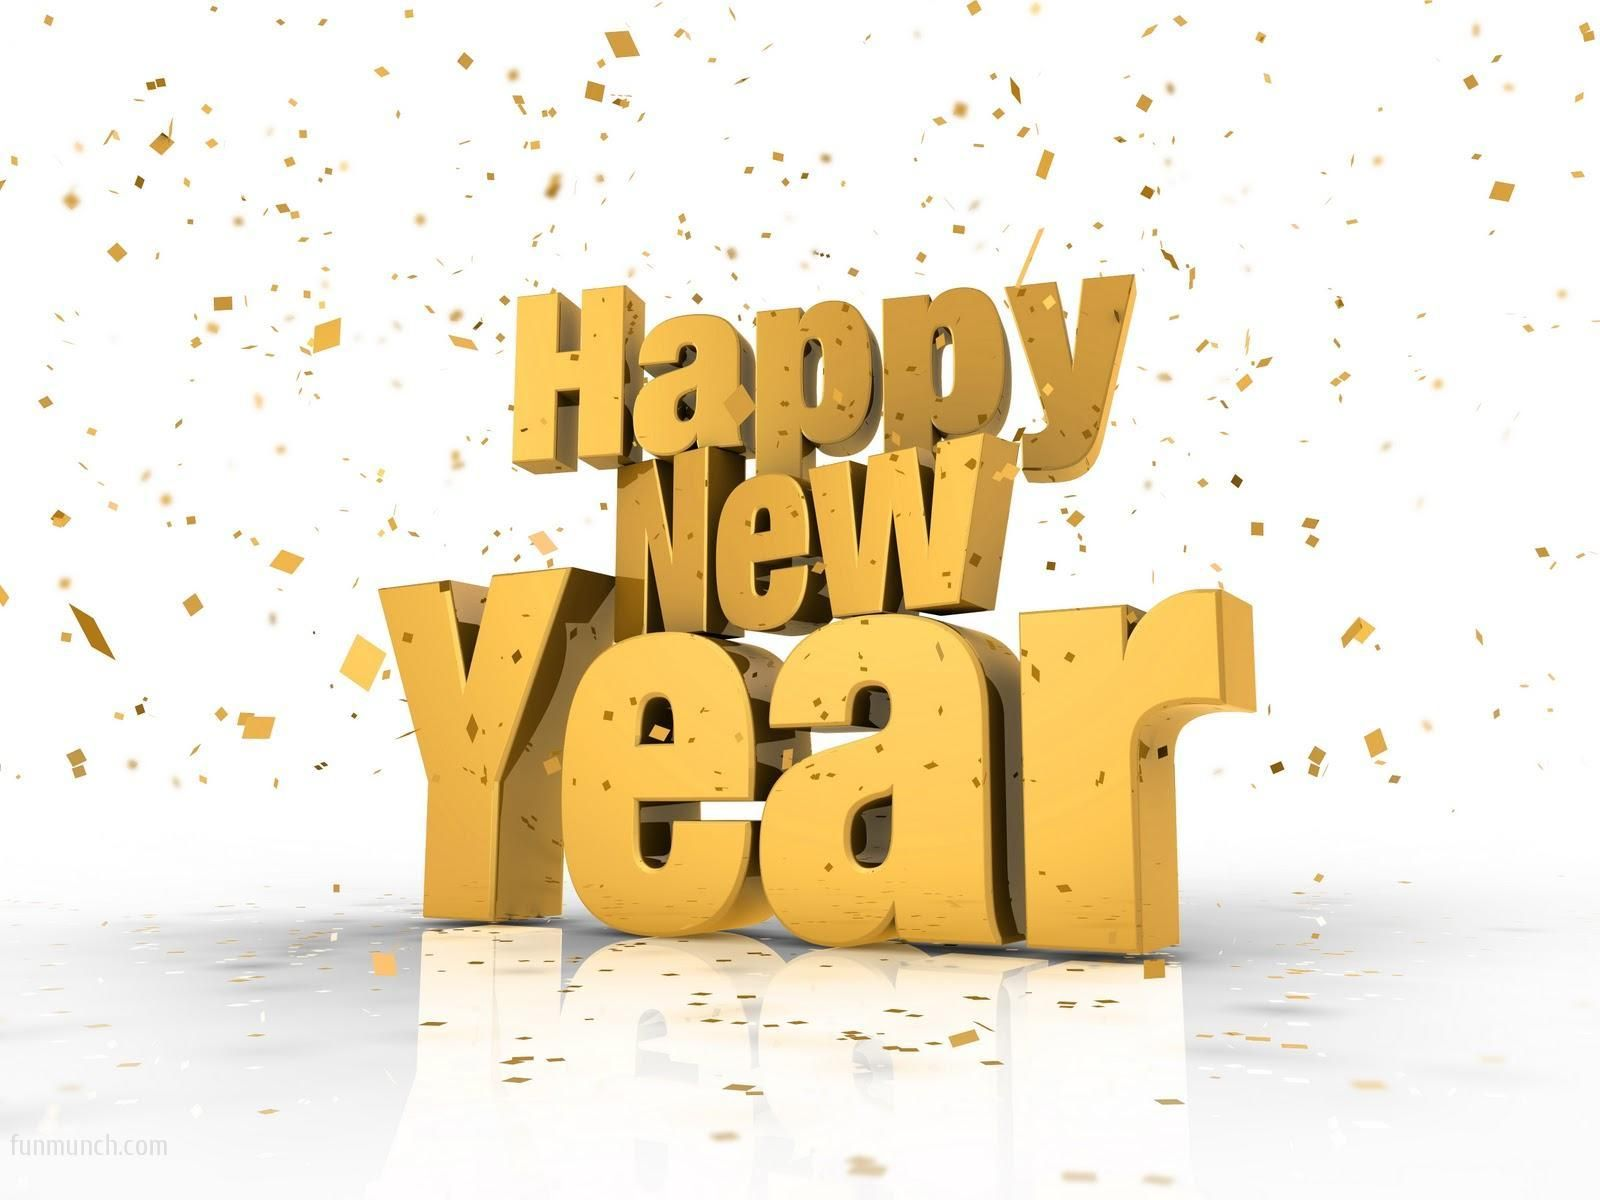 Happy New Year 2015 Png - Happy New Year 2015 3D Wallpapers   Happy New Year 2015 ...